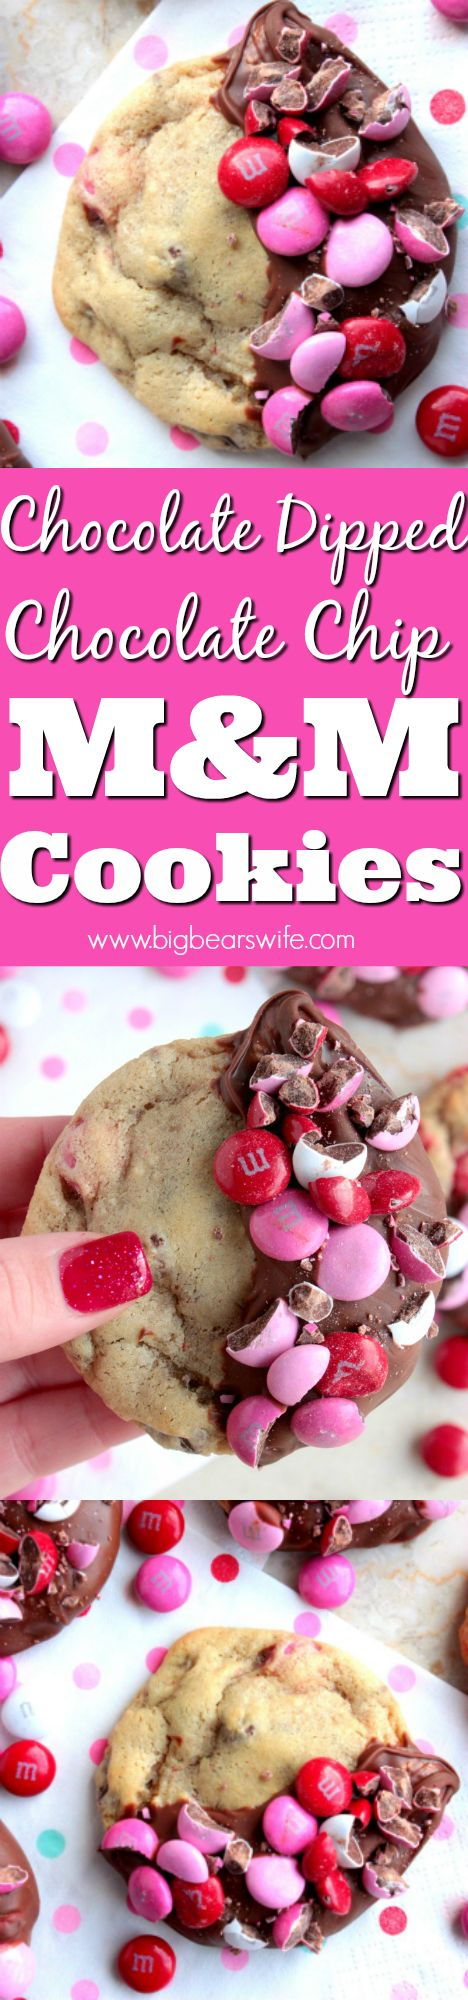 Chocolate Dipped Chocolate Chip M&M Cookies -If you love soft chewy chocolate chip cookies this is the recipe for you! These Chocolate Dipped Chocolate Chip M&M Cookies are amazing! They would be perfect for you Valentine or anyone that loves cookies!